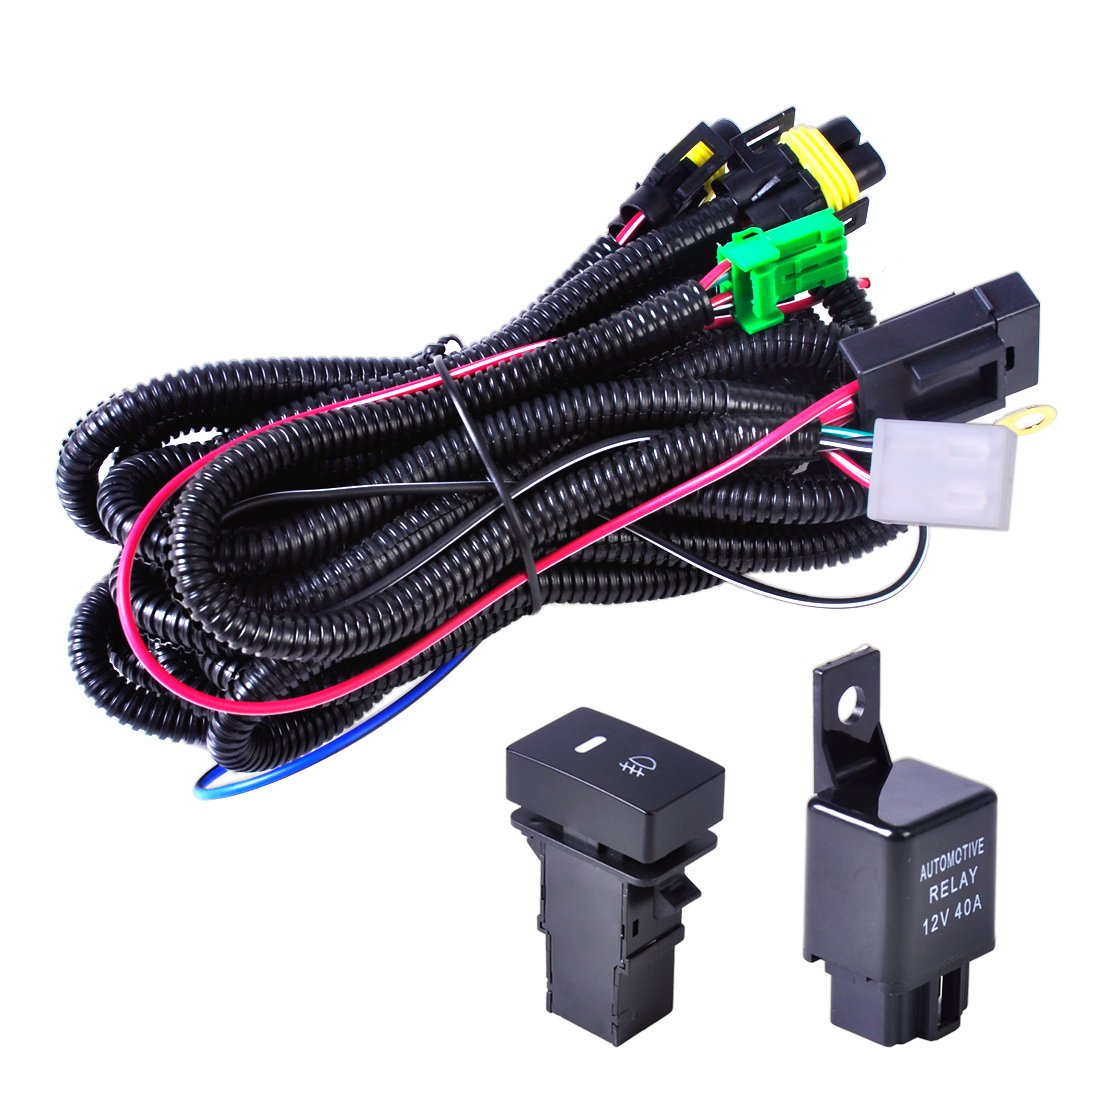 Beler H11 Fog Light Lamp Wiring Harness Sockets Wire For Nissan Murano Switch Kits Ford Infiniti Honda Lincoln Acura Automotive